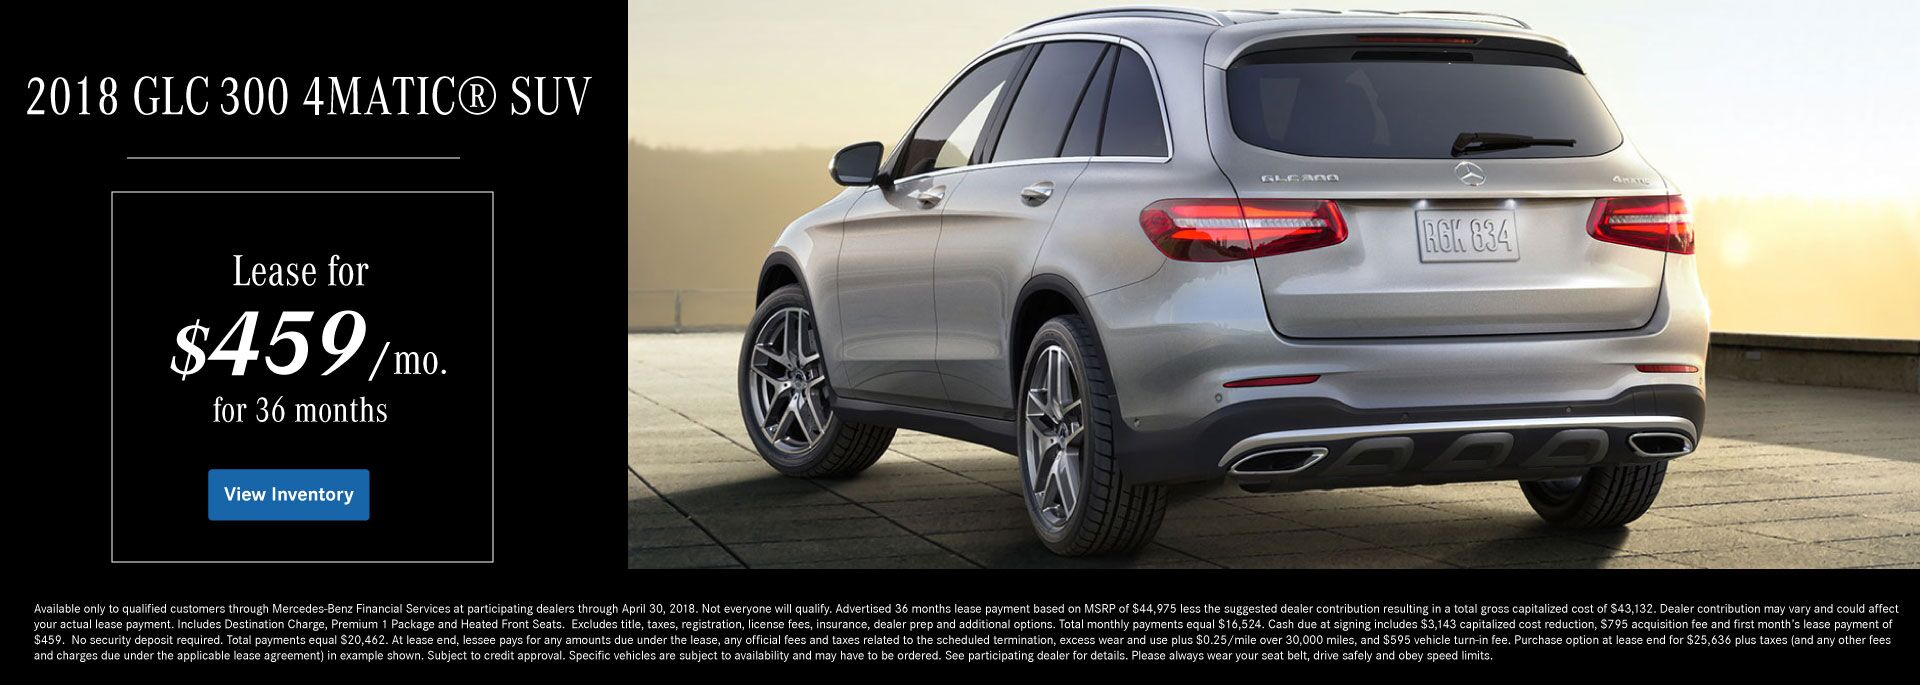 2018 GLC 300 4MATIC SUV